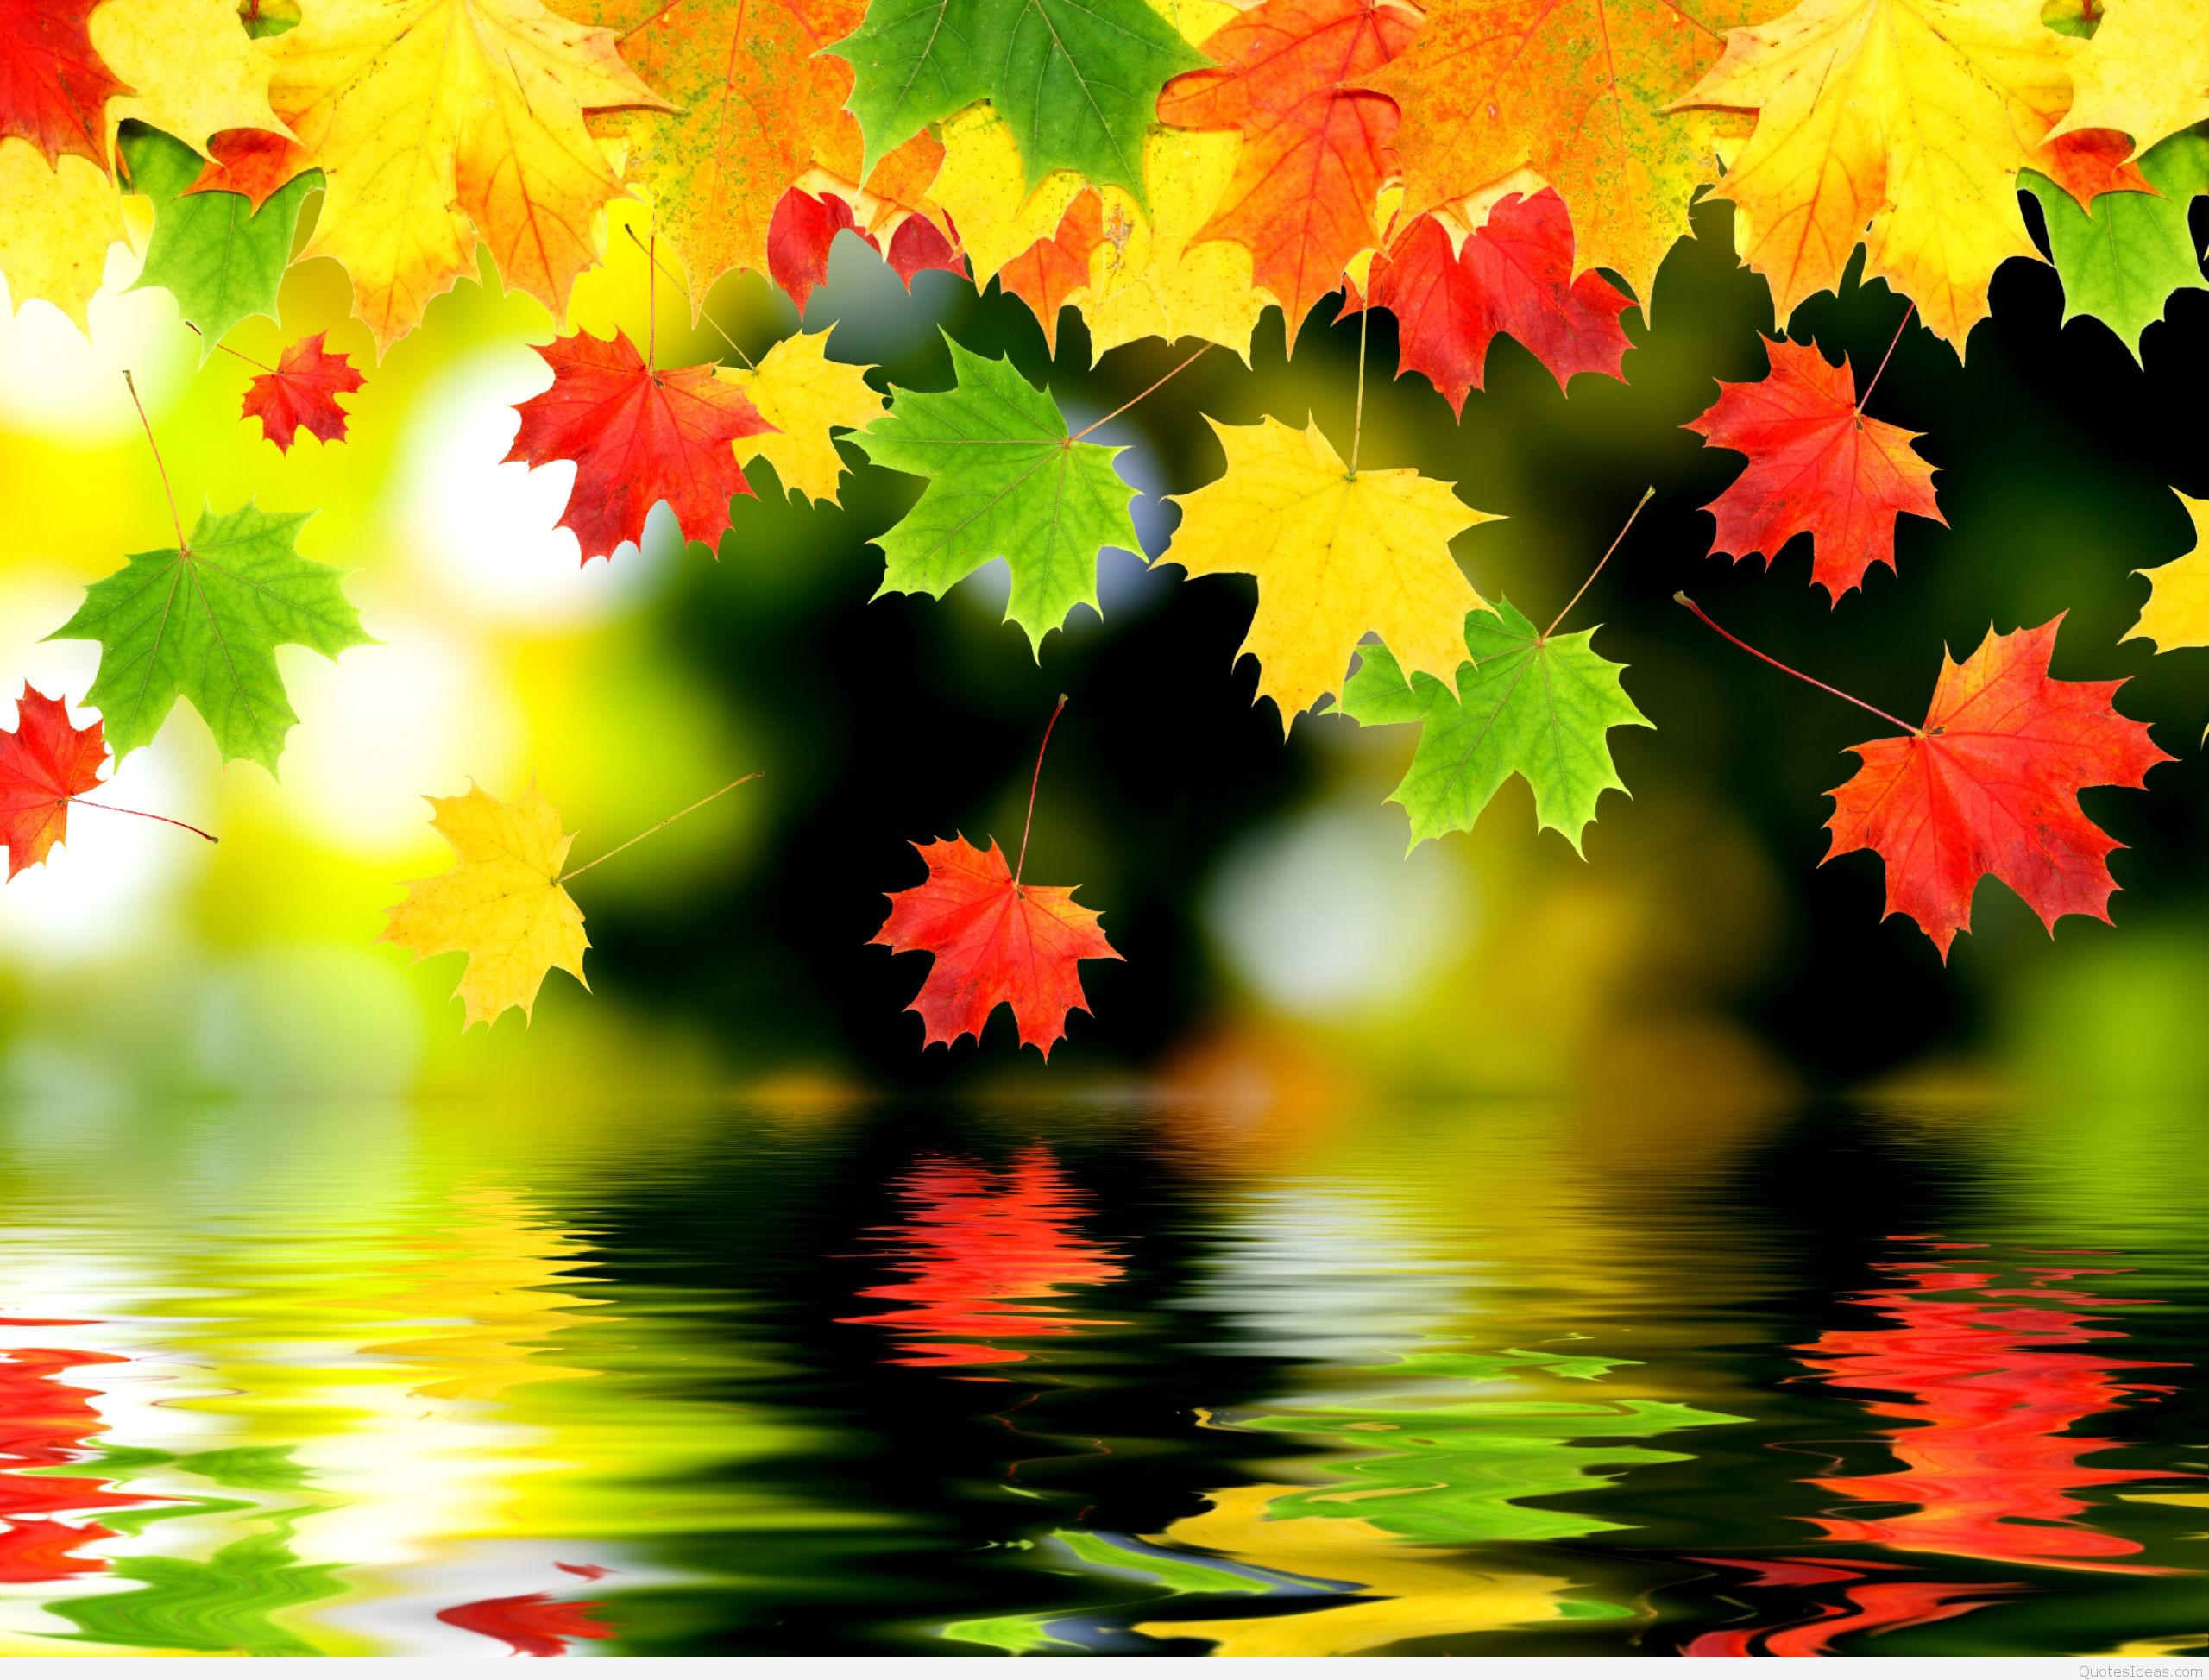 Beautiful Nature Autumn Background With Maple Leaves Stock Image